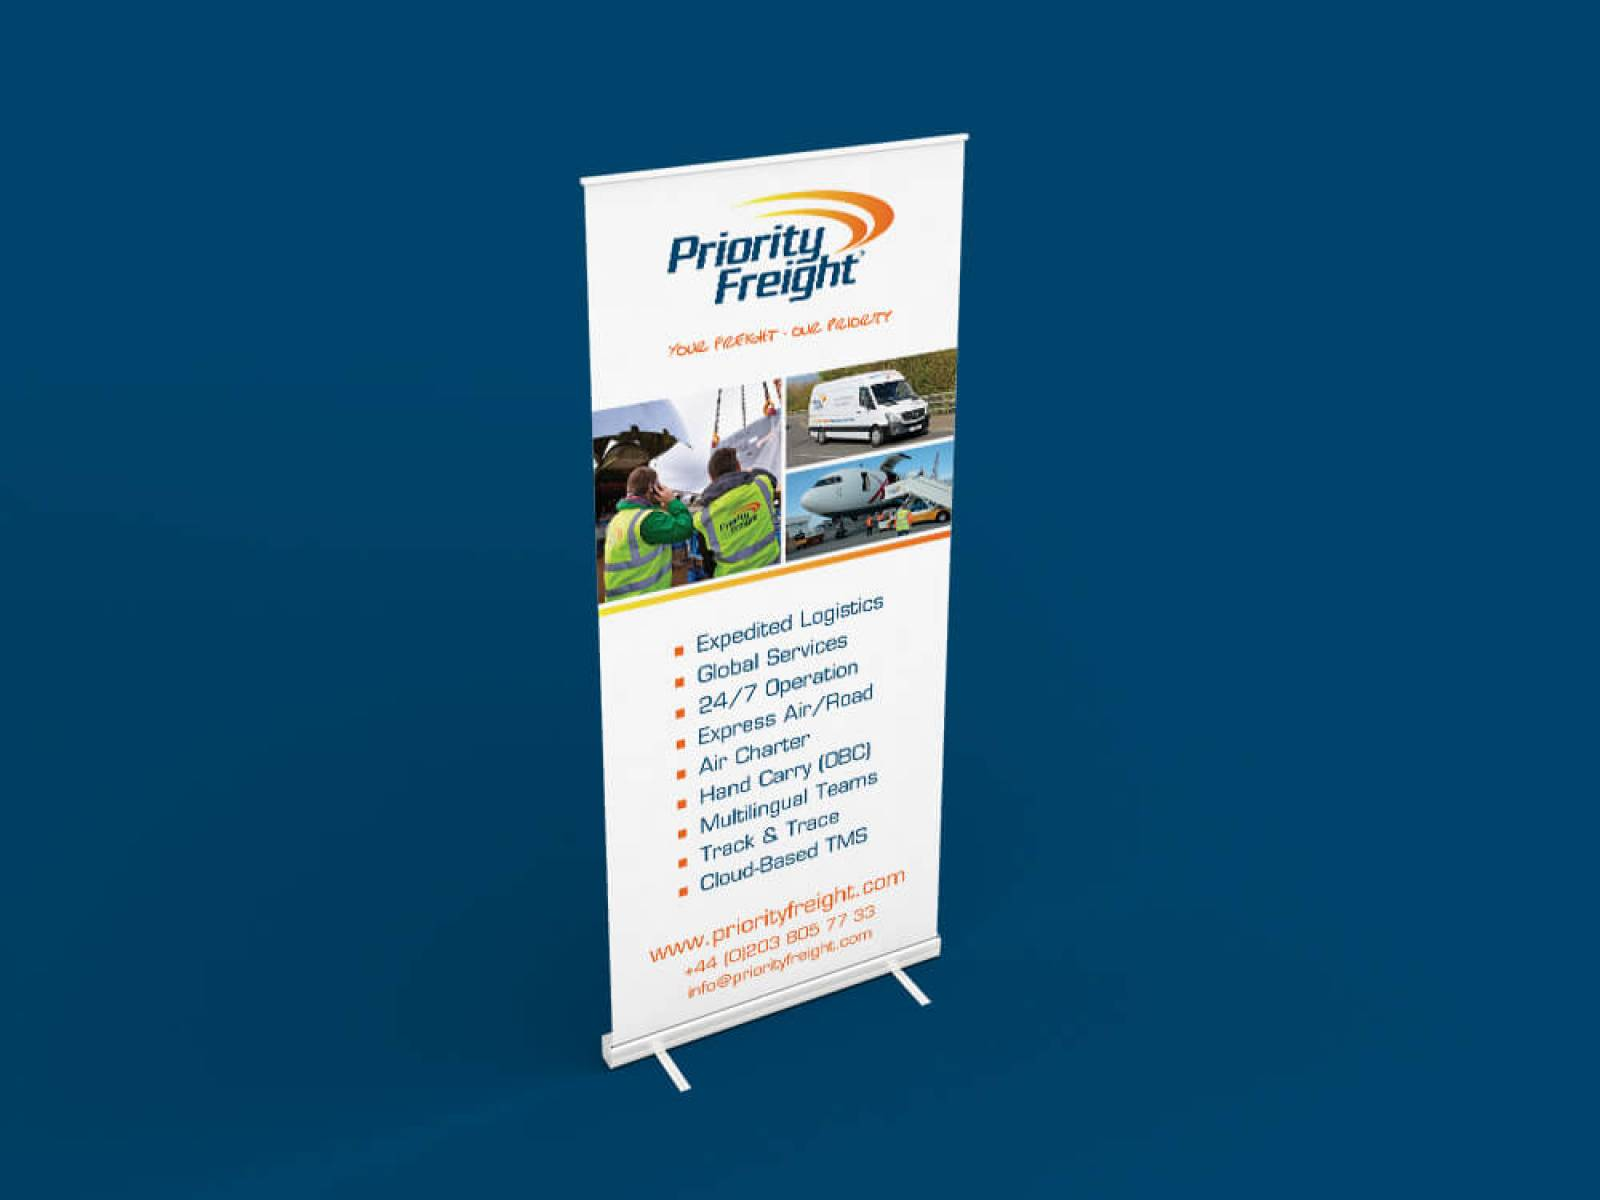 Priority-Freight-roll-up-banner-design-agency-graphic-design-canterbury.jpg